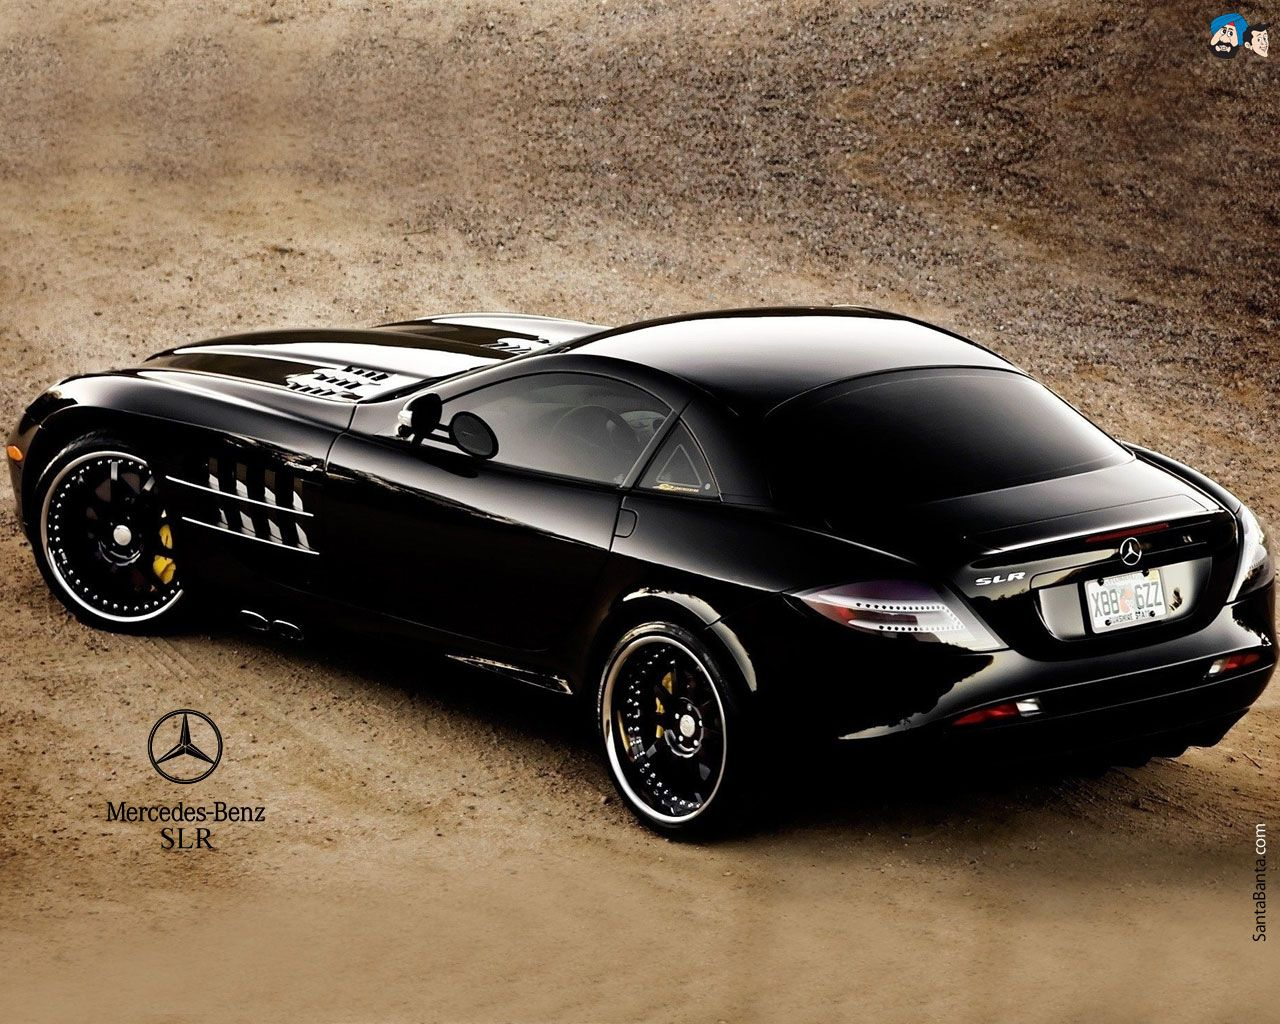 mercedes benz slr amazing looking picture and amazing car. Black Bedroom Furniture Sets. Home Design Ideas